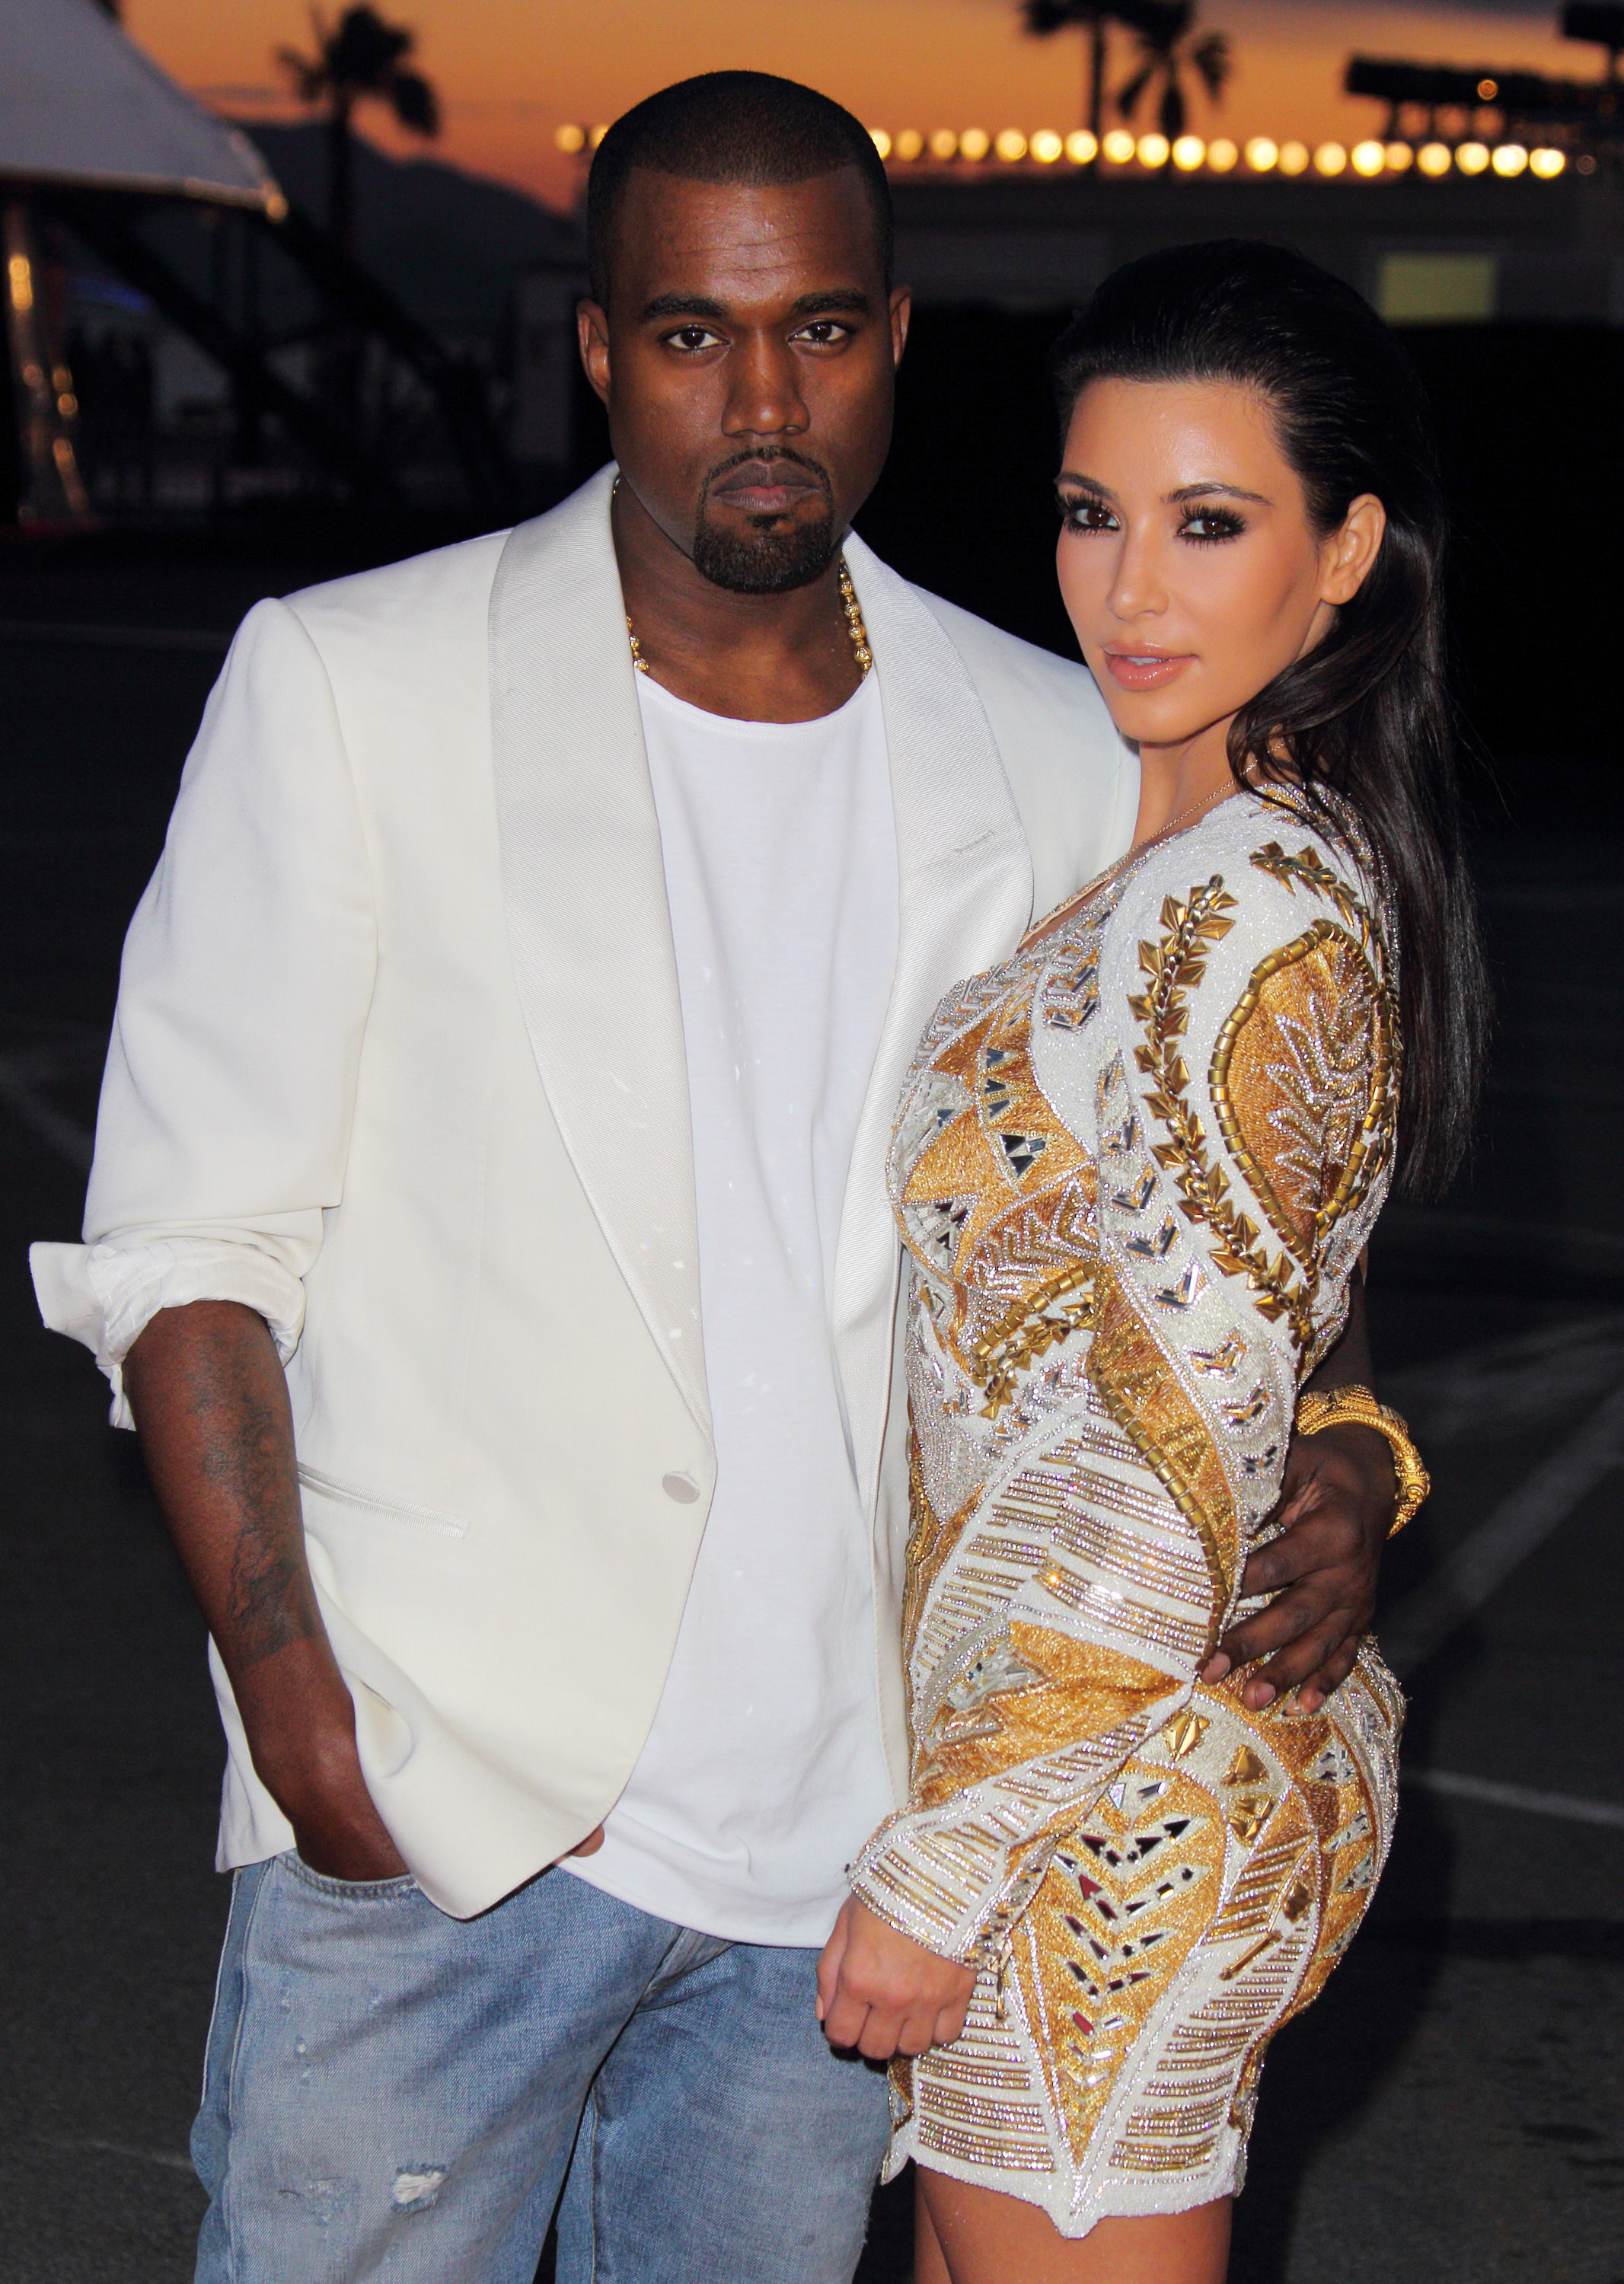 Kimye became an official romantic thing in April 2012—there had been rumors that they were sneaking around when Kim was still married to Kris Humphries, but no matter. In May the couple was photographed in Cannes before the premiere of the rapper's 30-minute short film <i>Cruel Summer.</i>